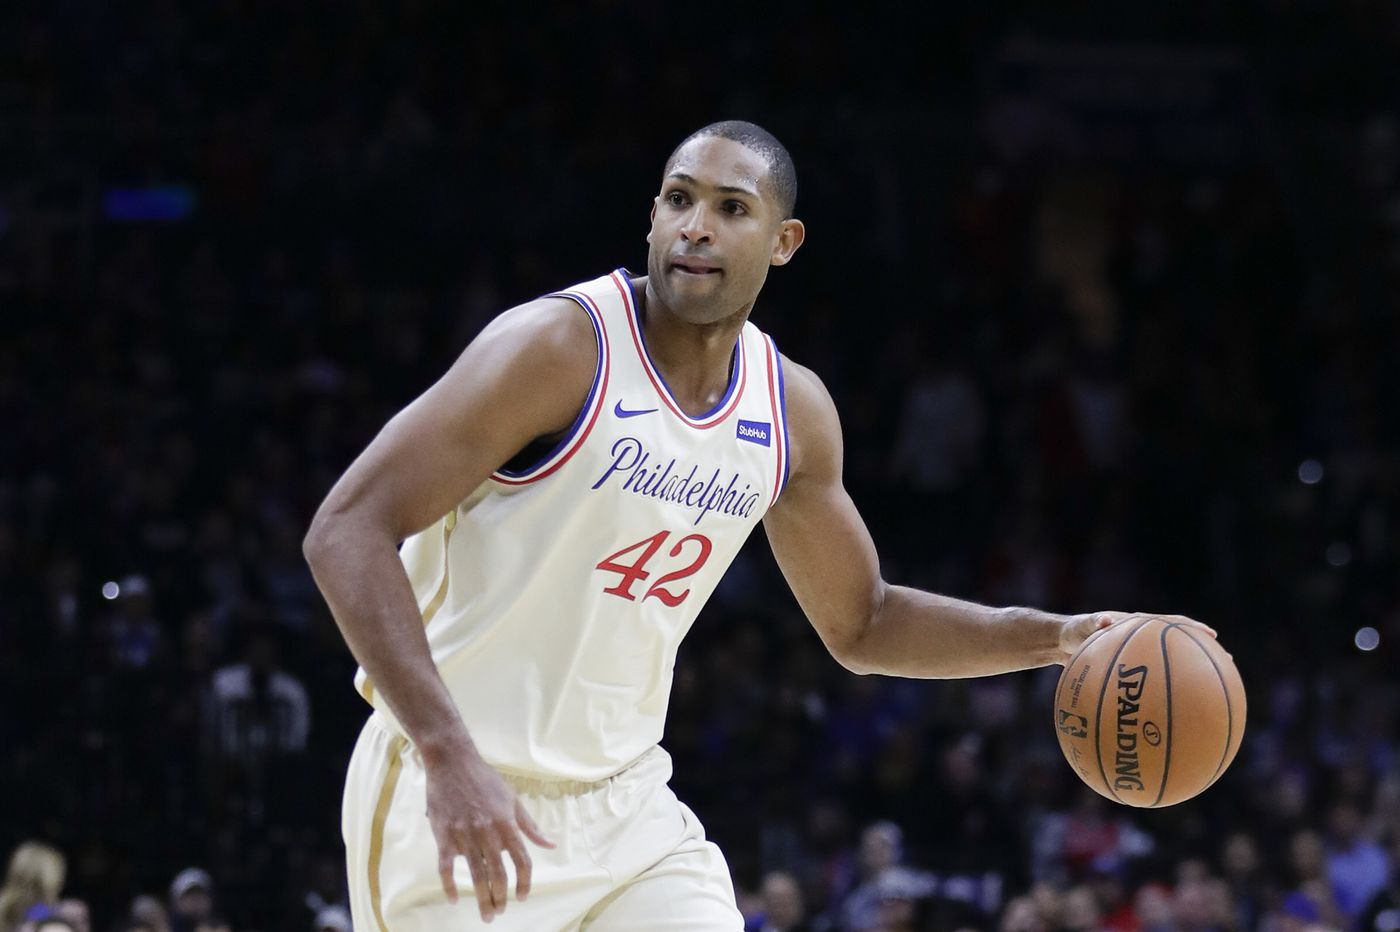 Sixers' Al Horford to remain sidelined, miss Pelicans game